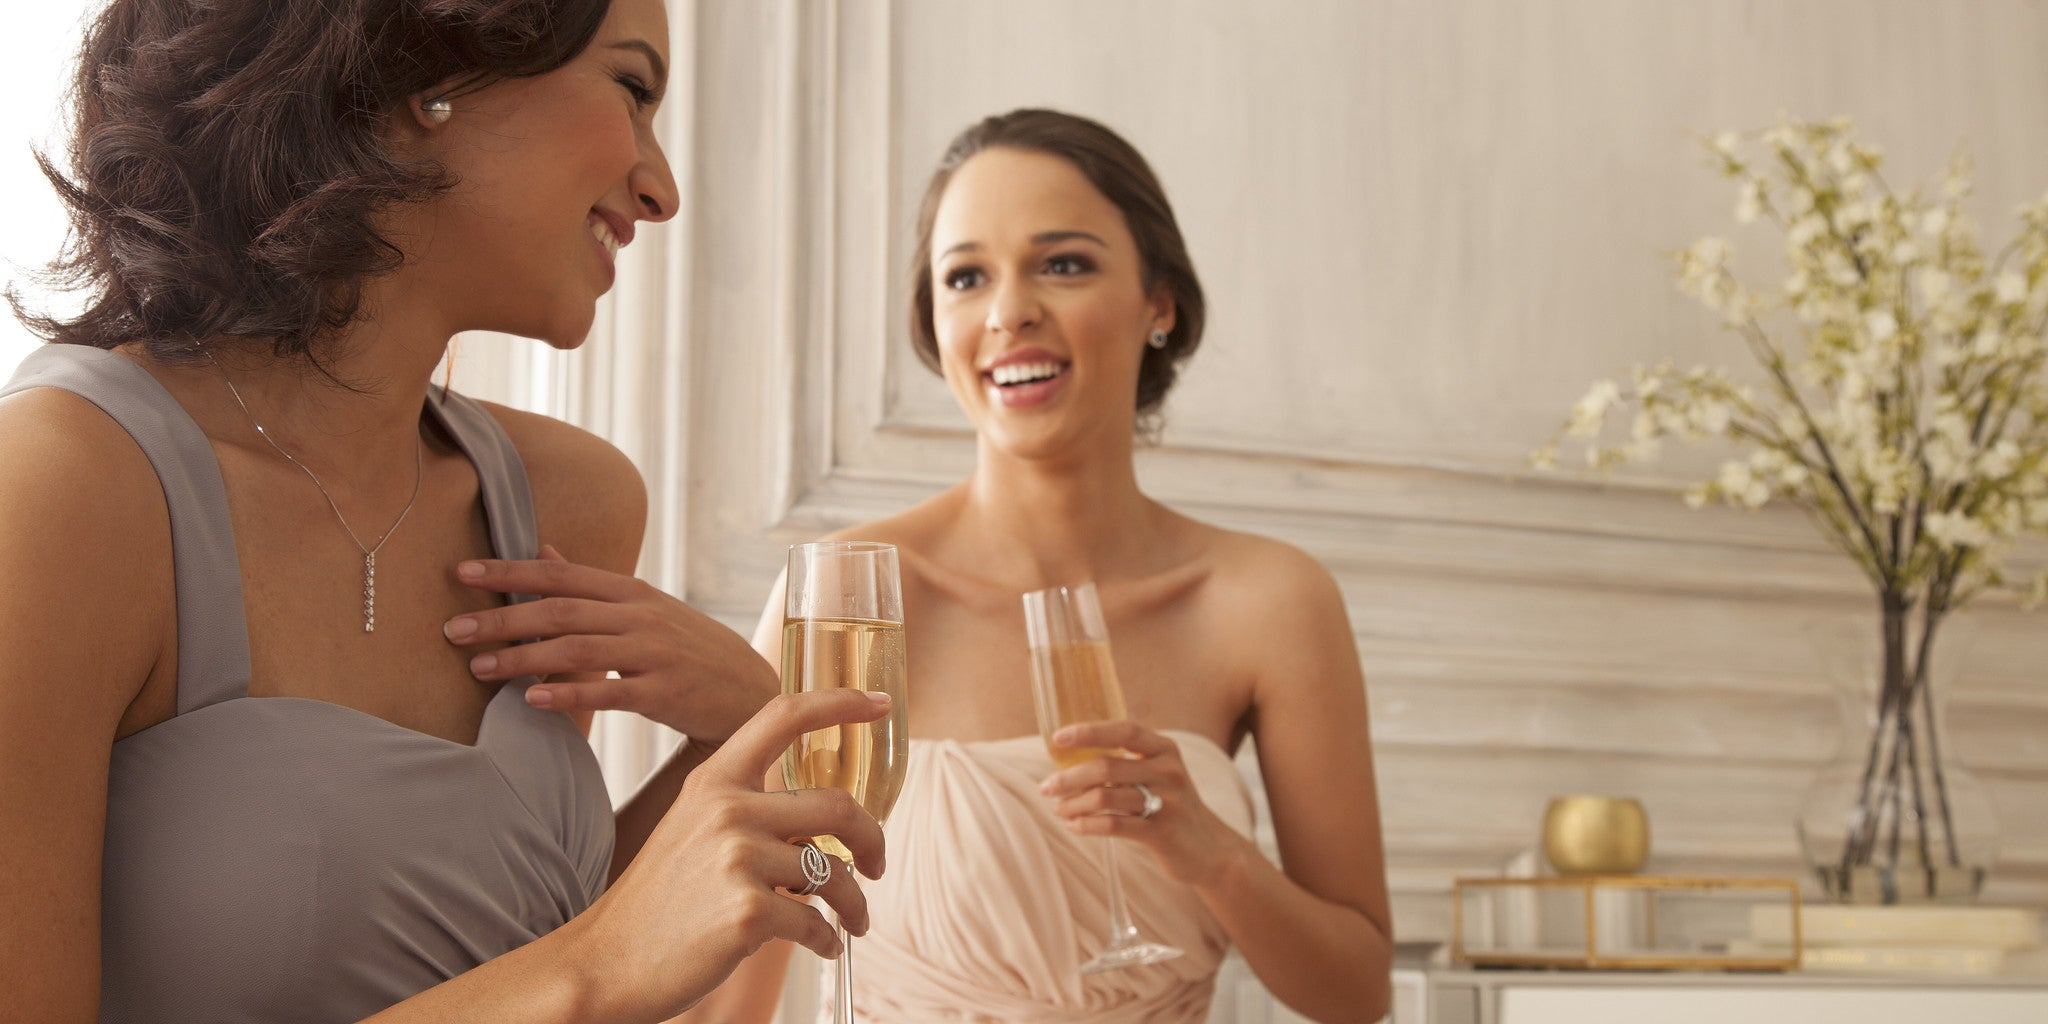 Beyond Bridal, pt. III: Gifts for Your Bridesmaids